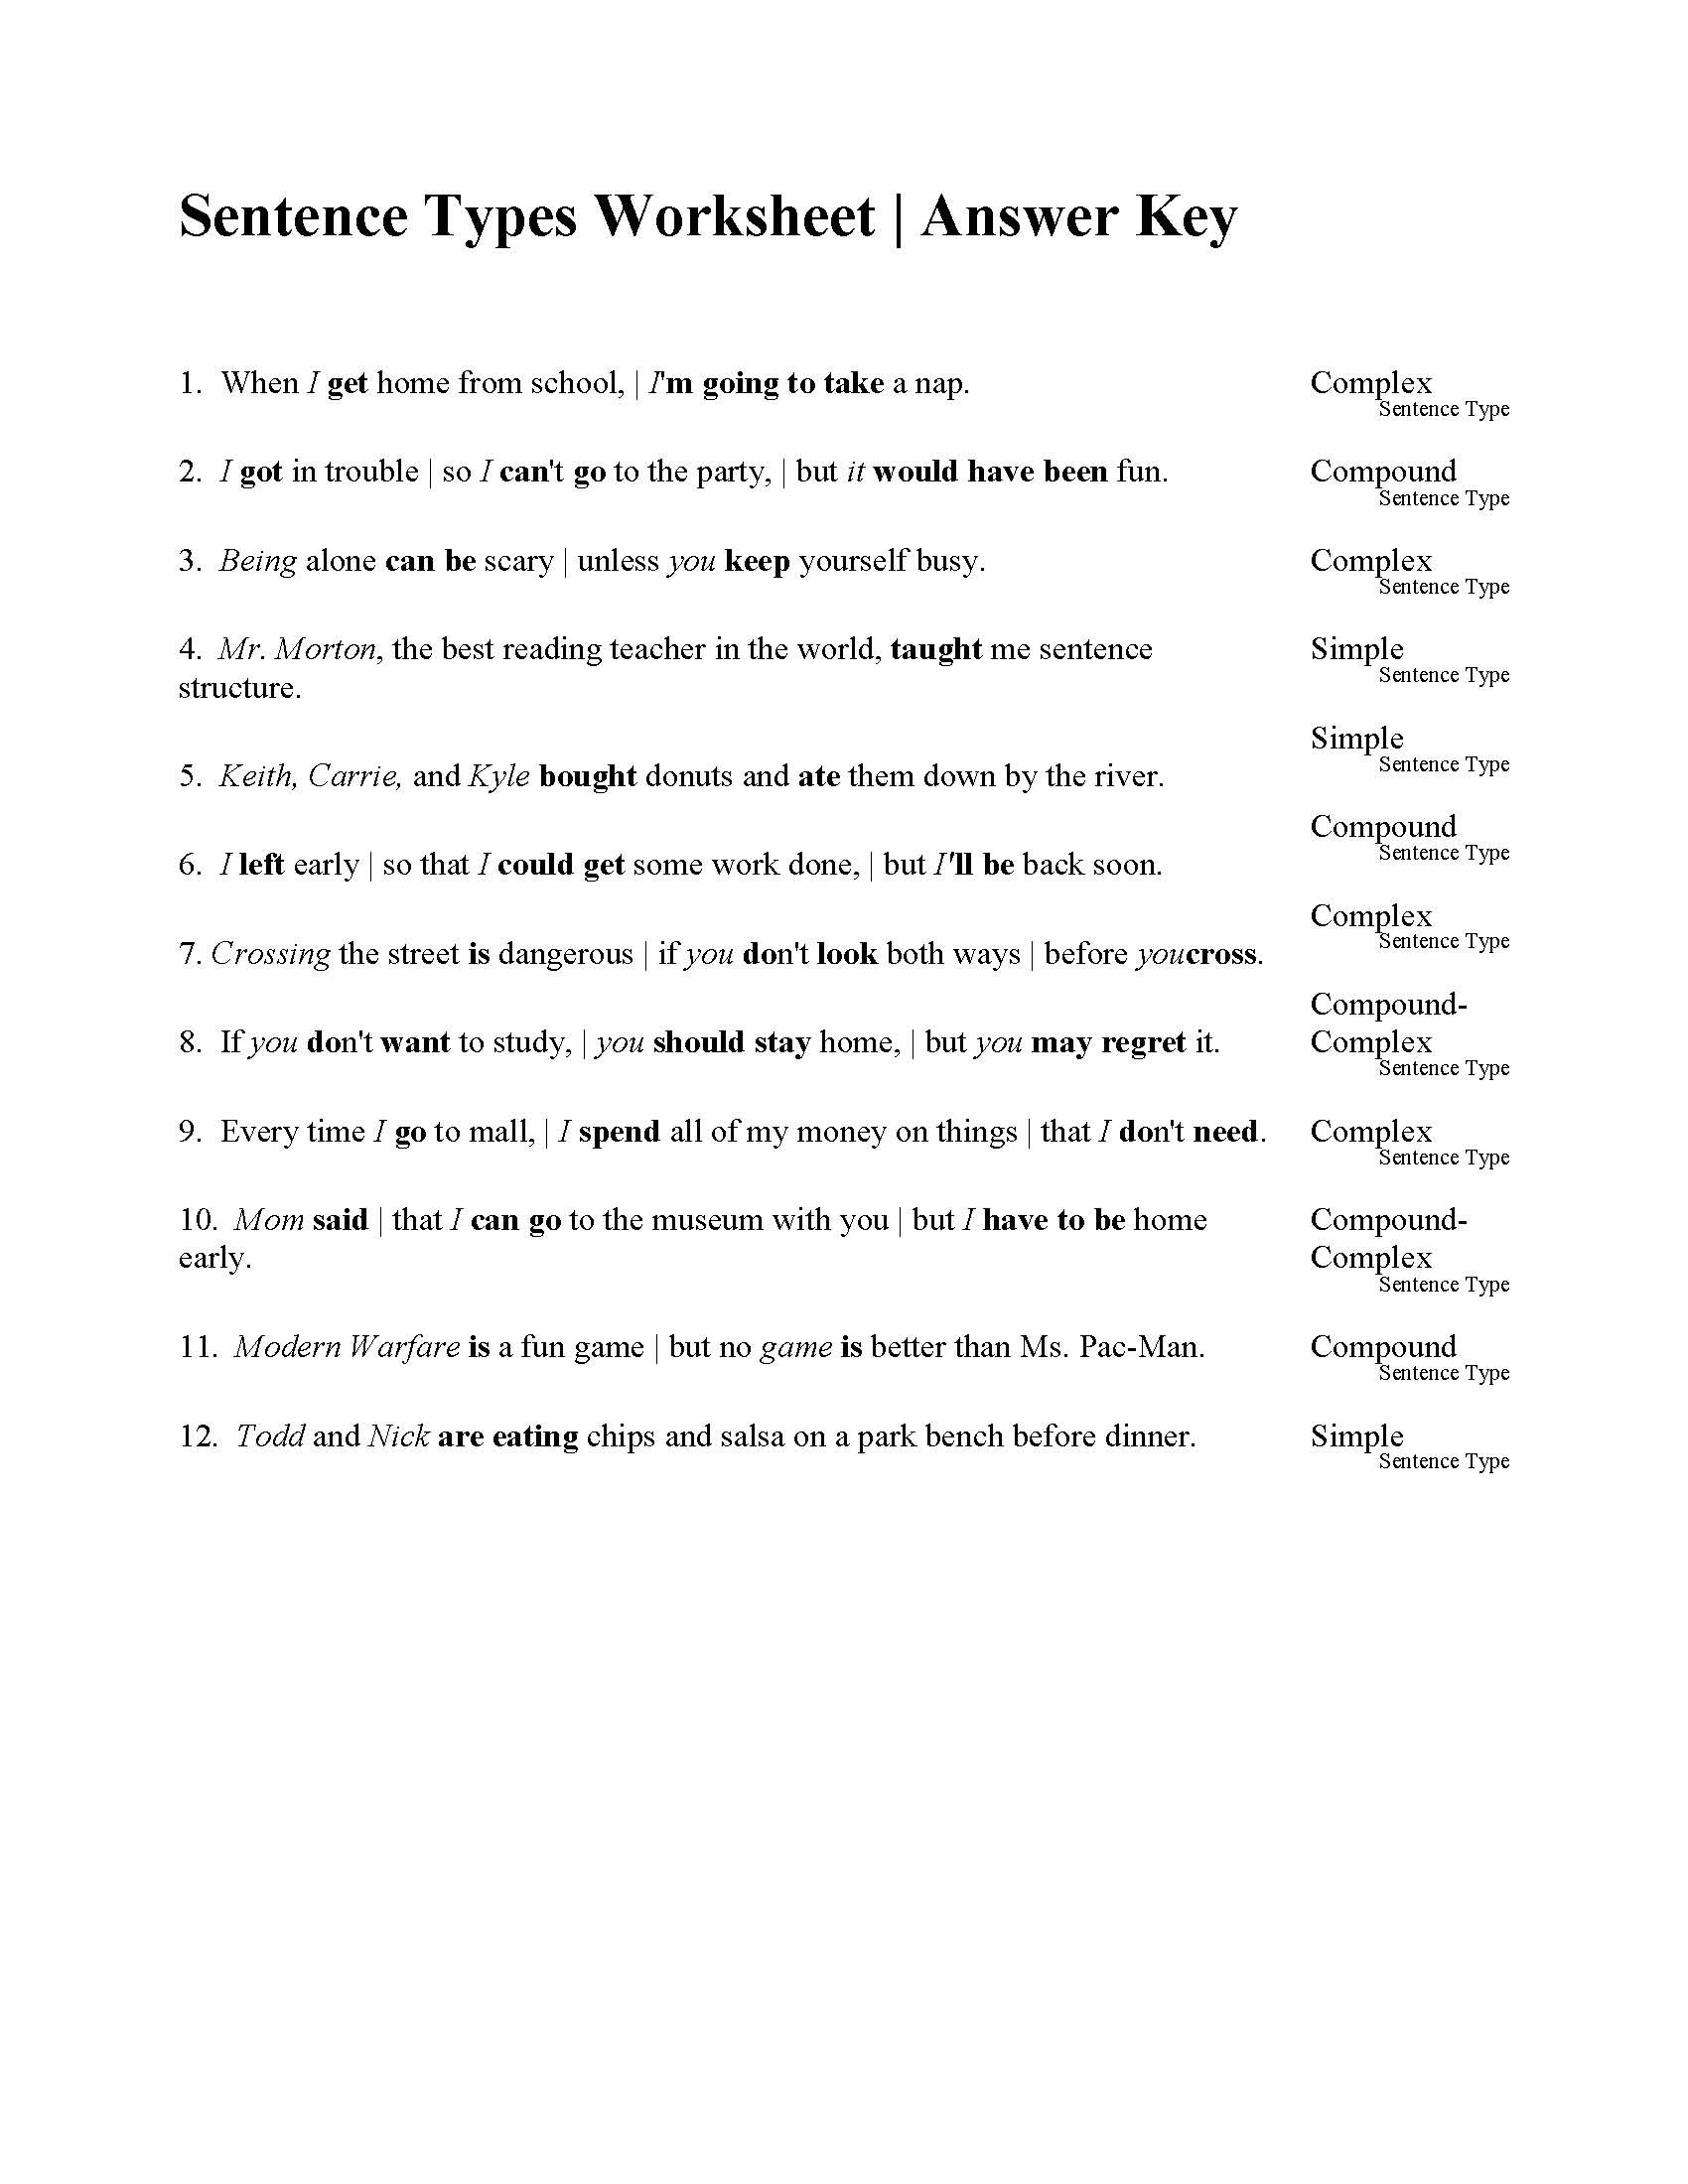 Complex Numbers Worksheet Answers Sentences Types Worksheet Answers Sentence Exercises